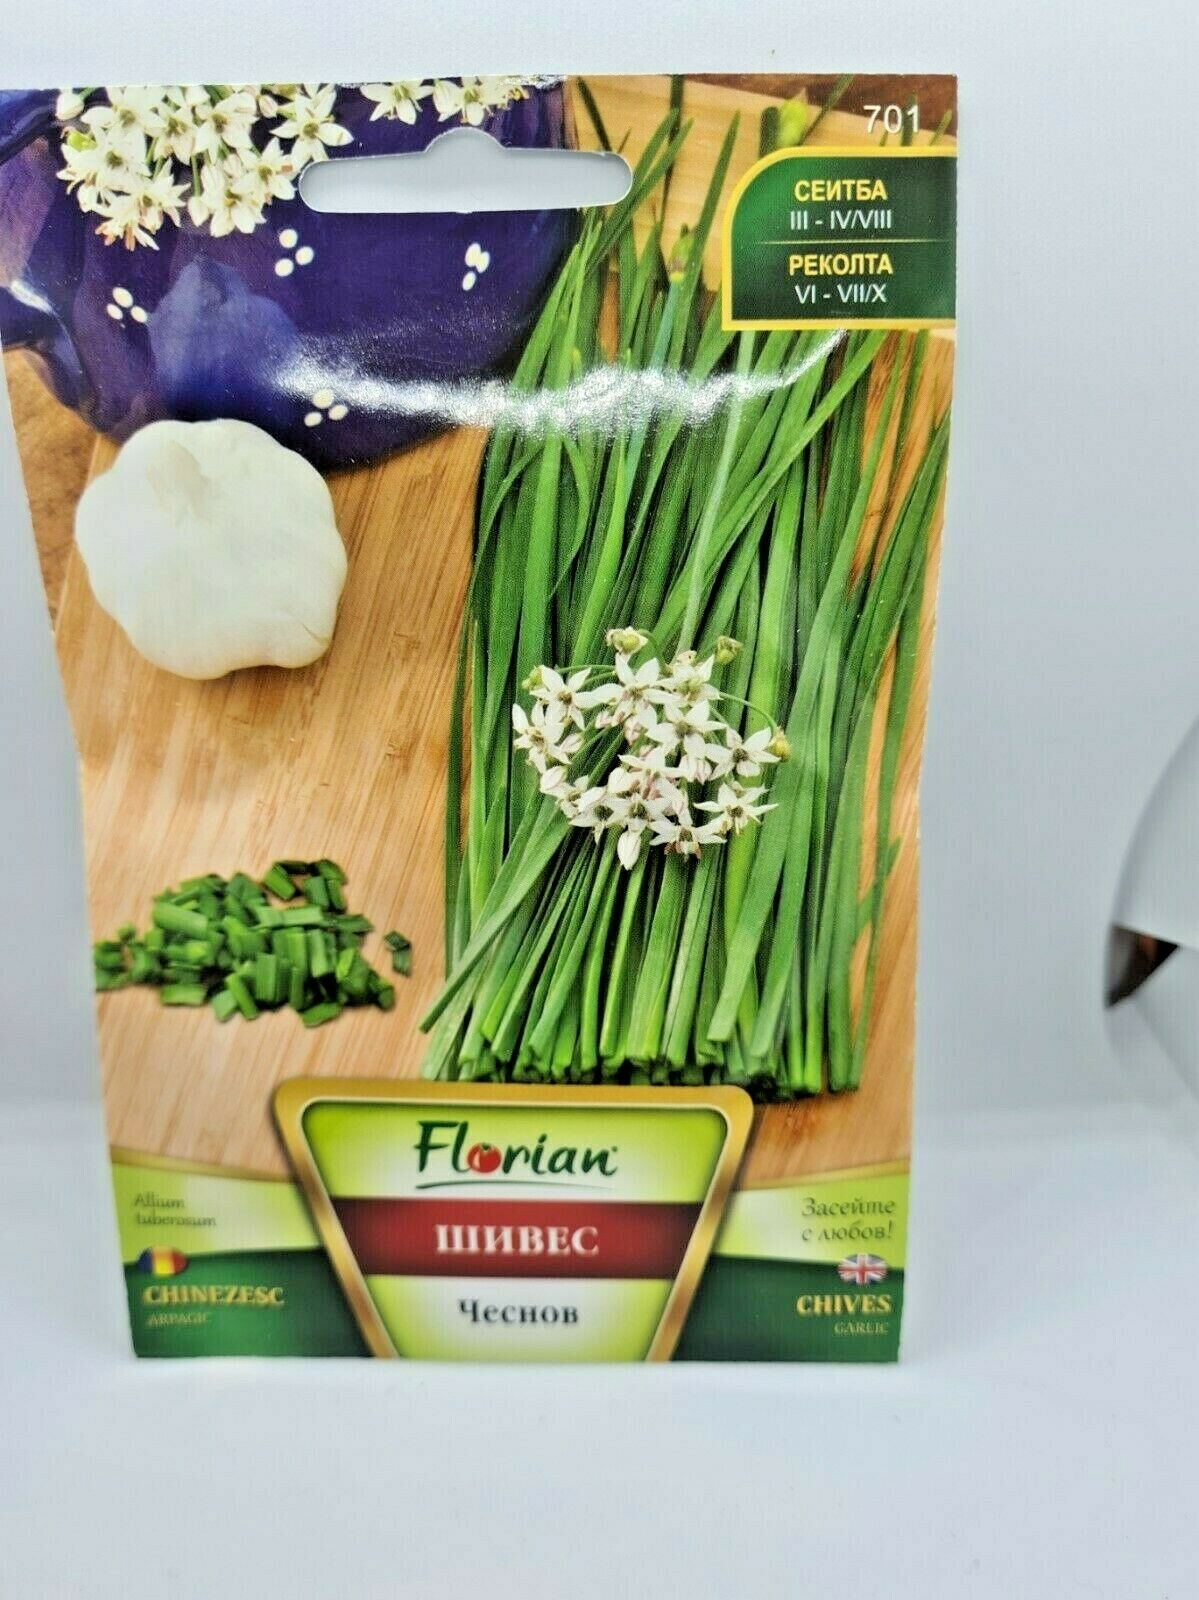 Garlic Chives Herb & Spice Vegetable 300 Seeds Garden pot growing Healthy food